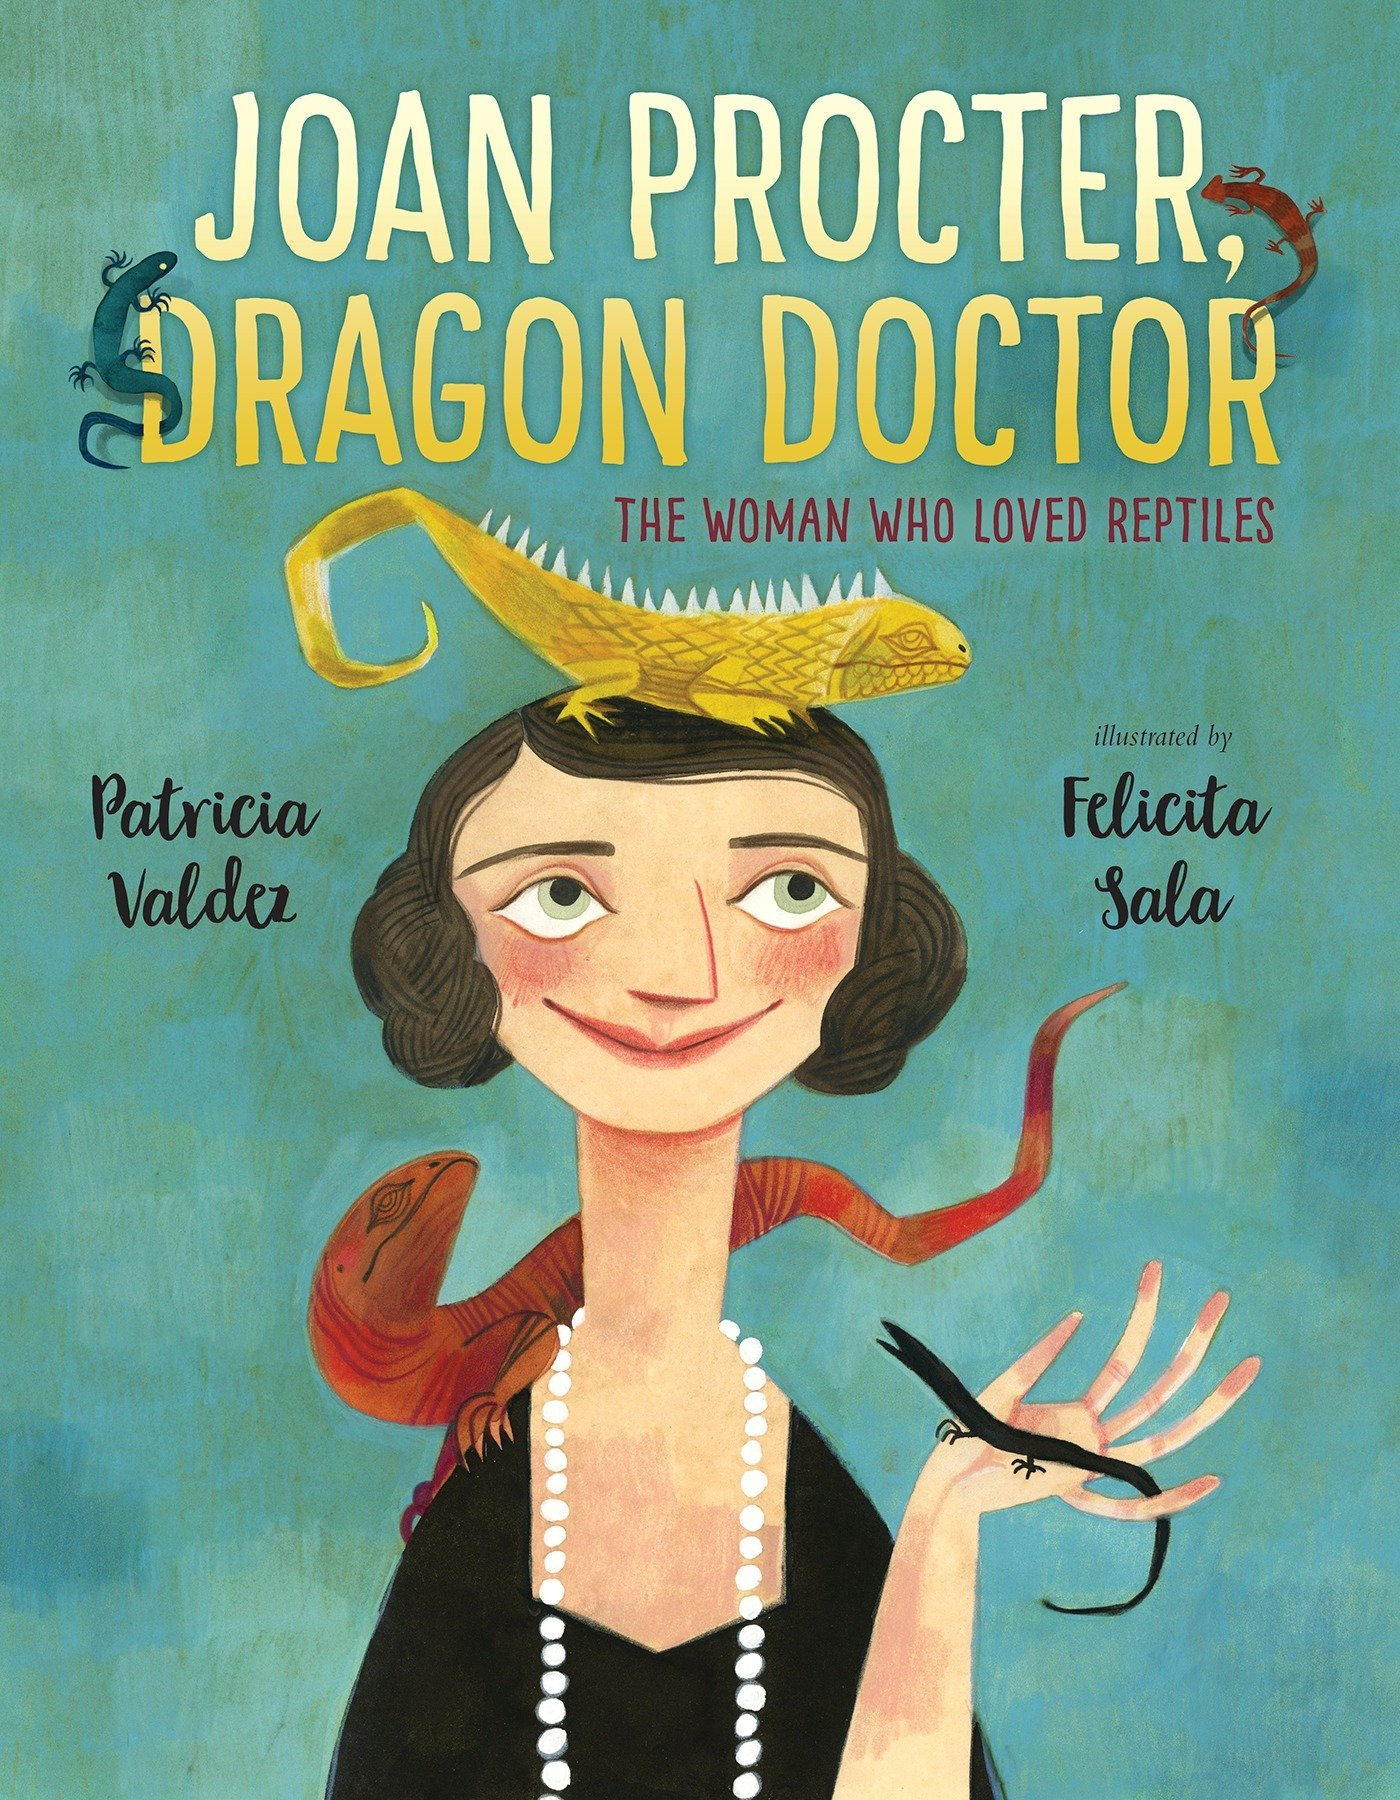 My recommendations in picture books about animals. Joan Procter Dragon Doctor by Patricia Valdez cover